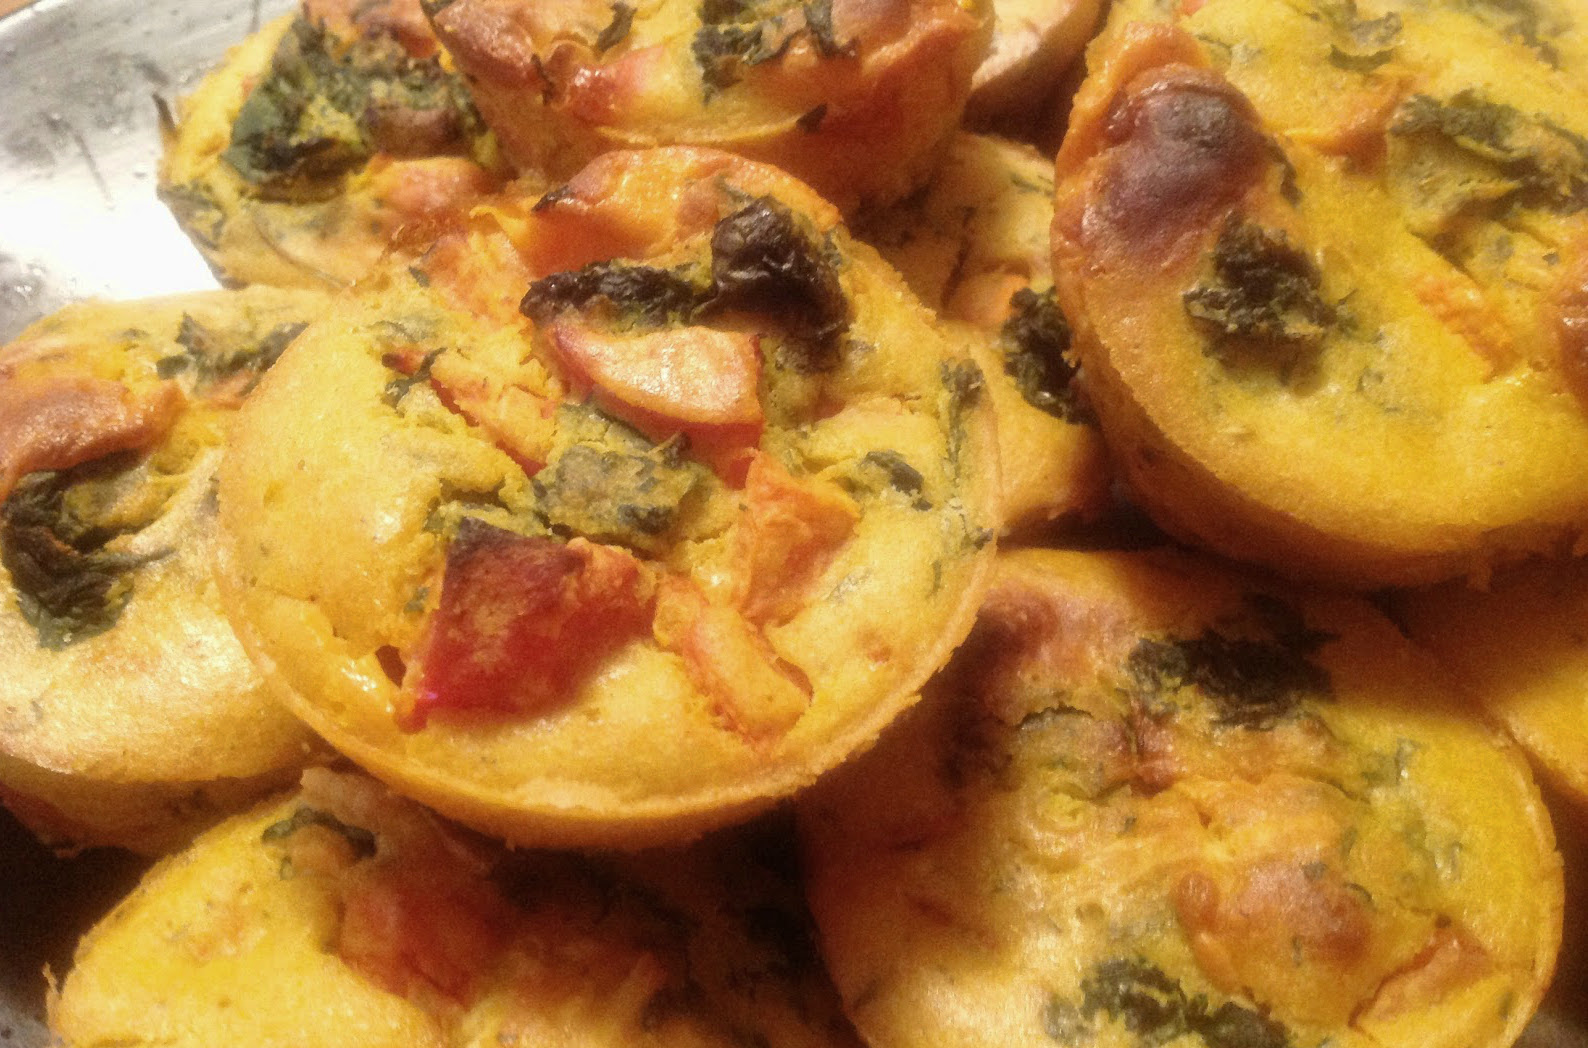 Spinach, Tomato, and Cheddar Mini-Quiches with Lemon Cashew Cream